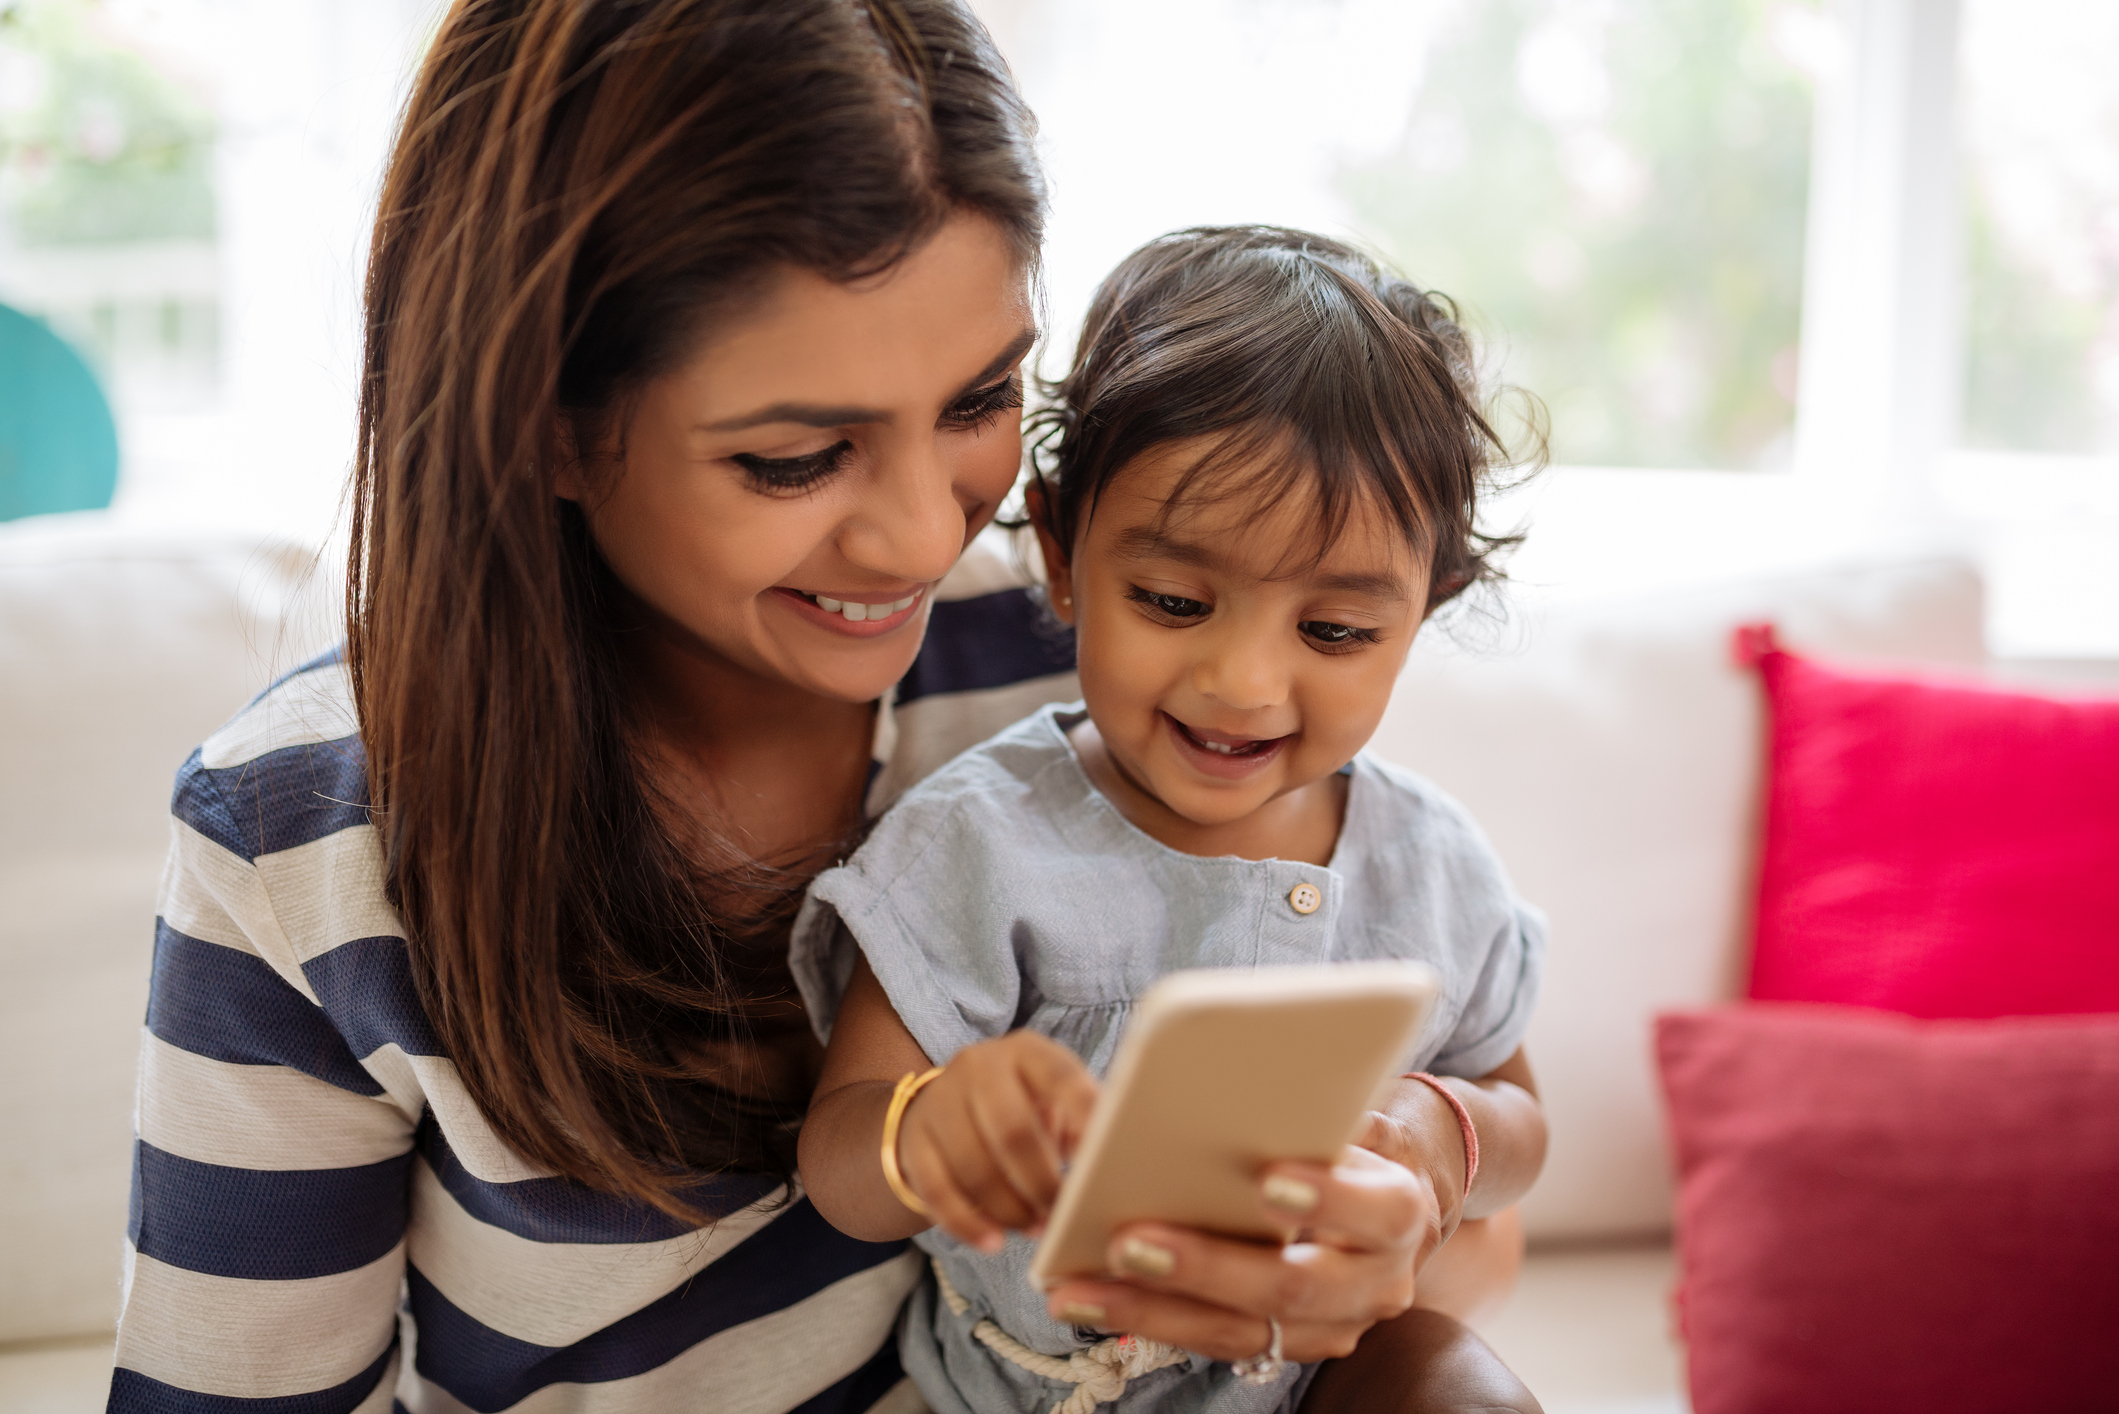 Mother and child using phone app